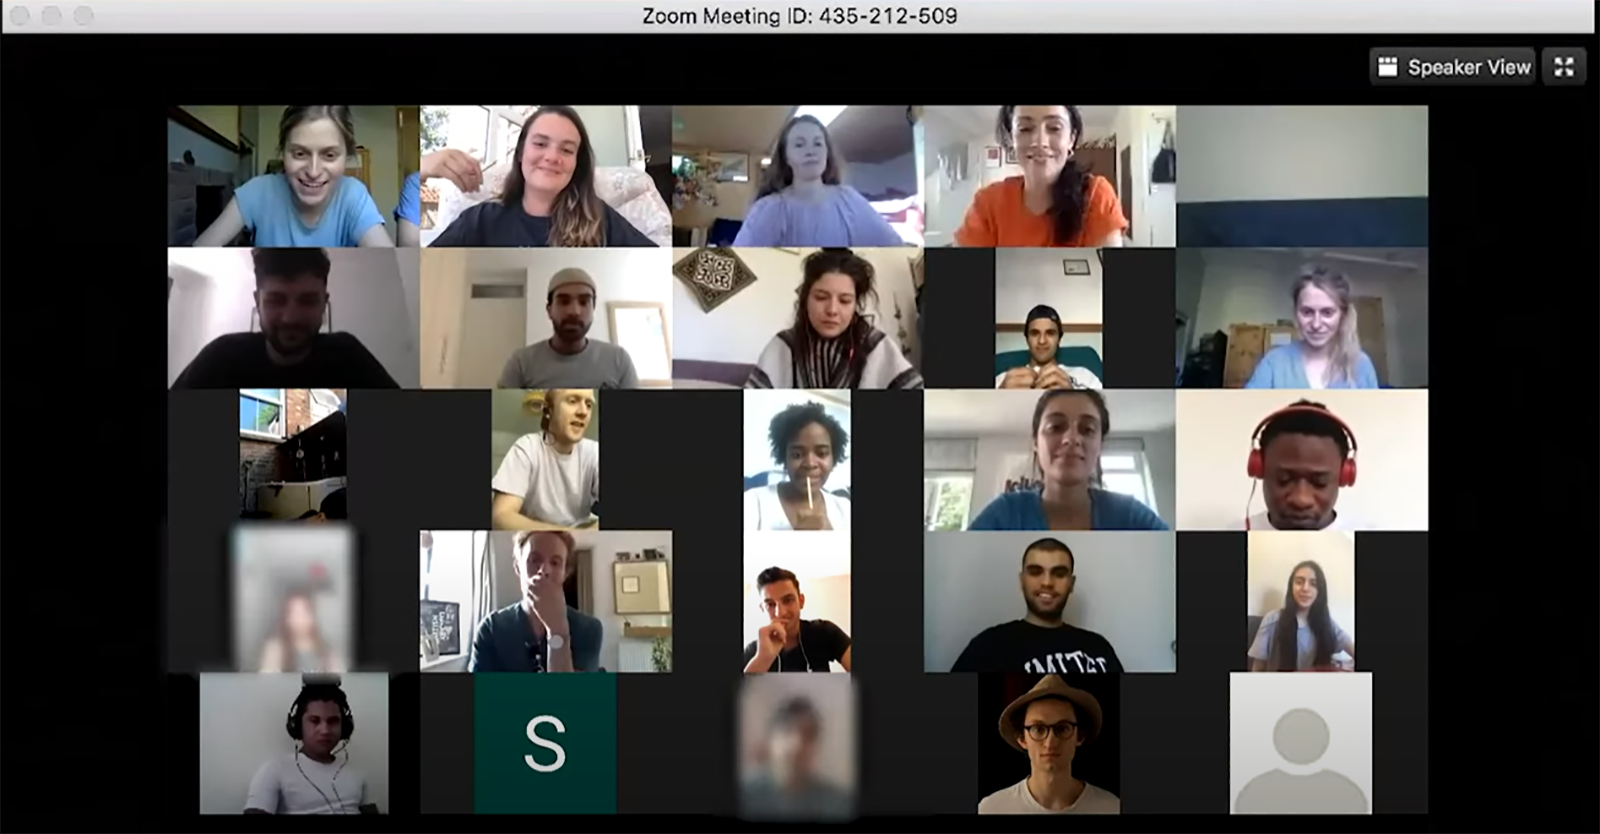 A screengrab of an online Zoom session, with thumbnails of different attendees.